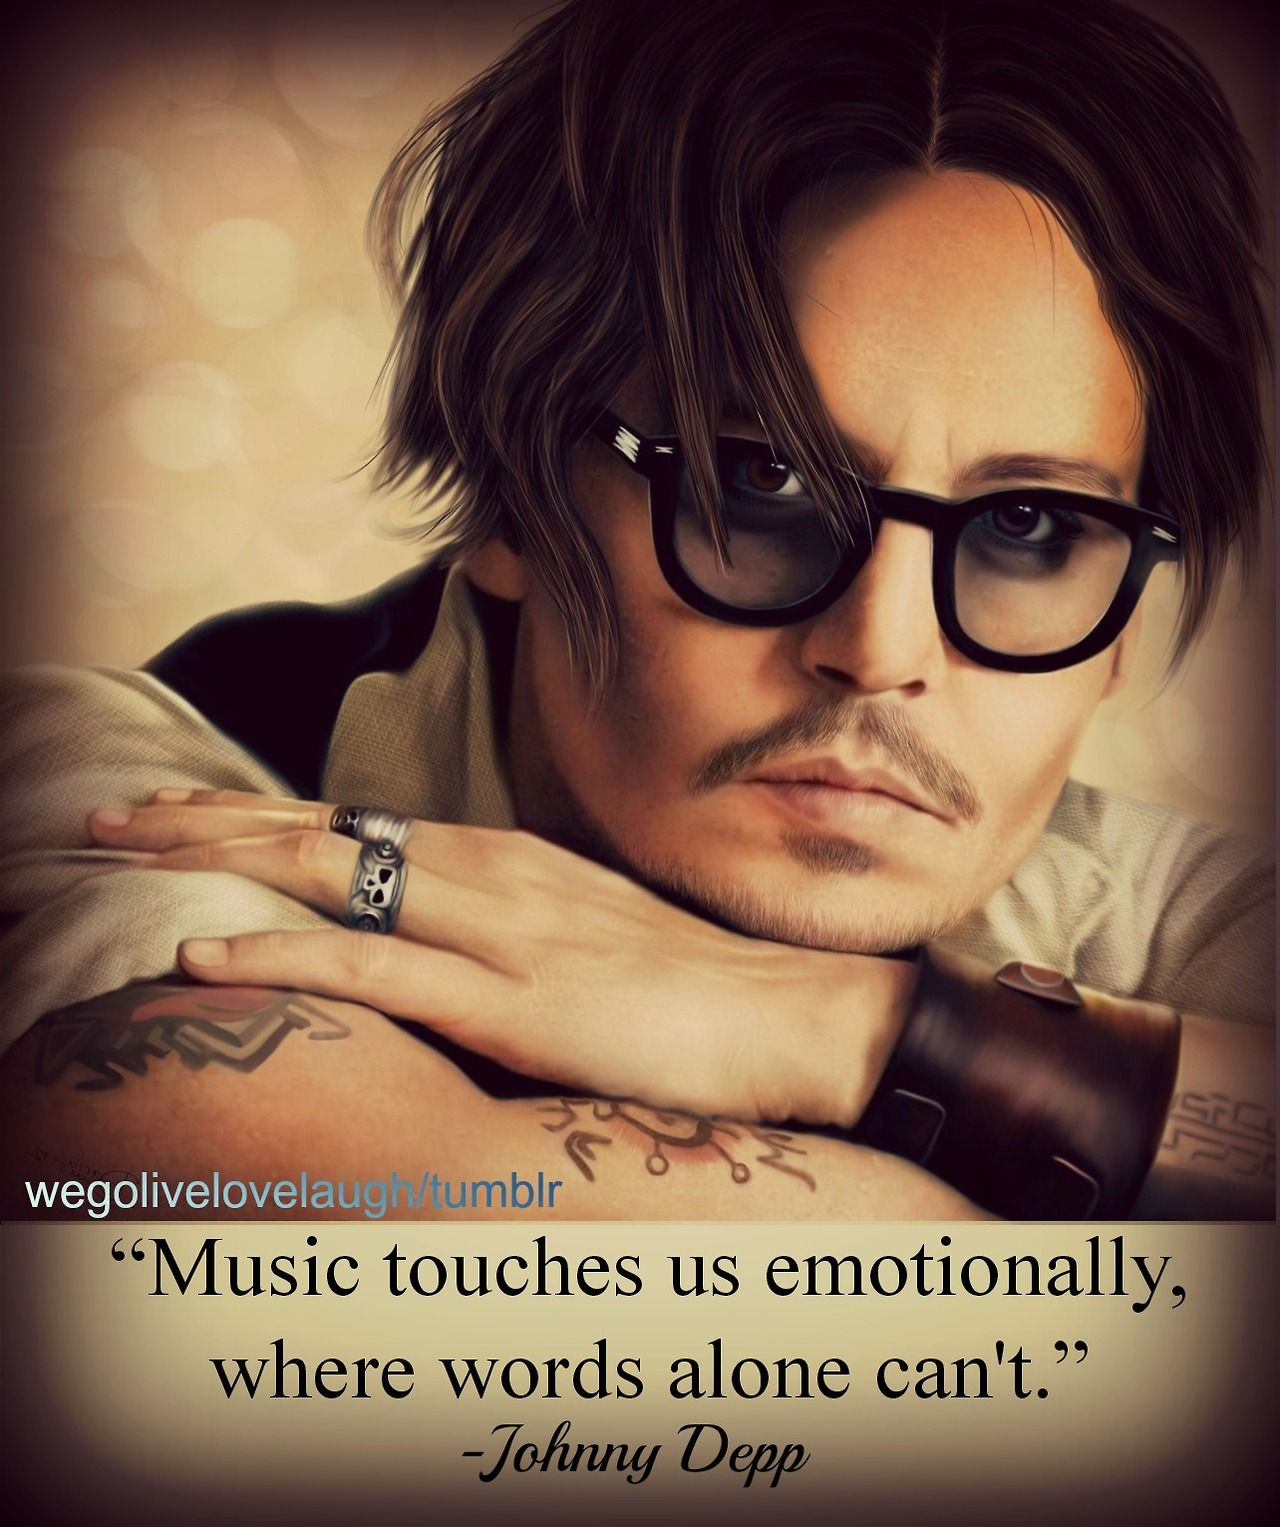 Music Touches Us Emotionally Where Words Alone Just Can't